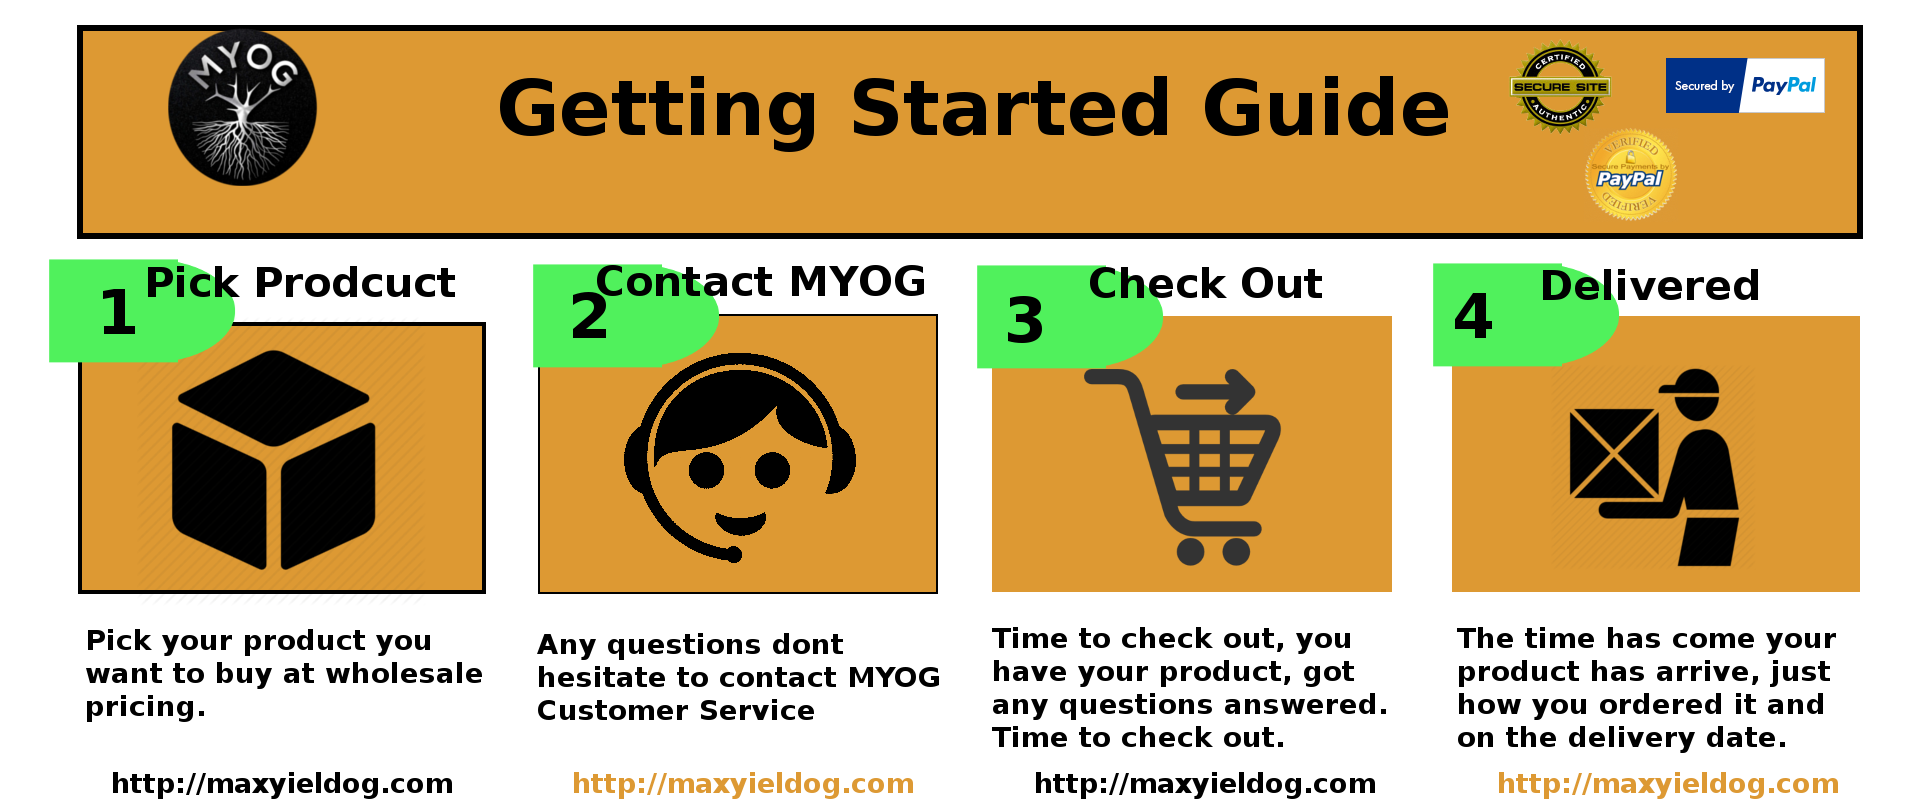 gettingstartedatmyogguide